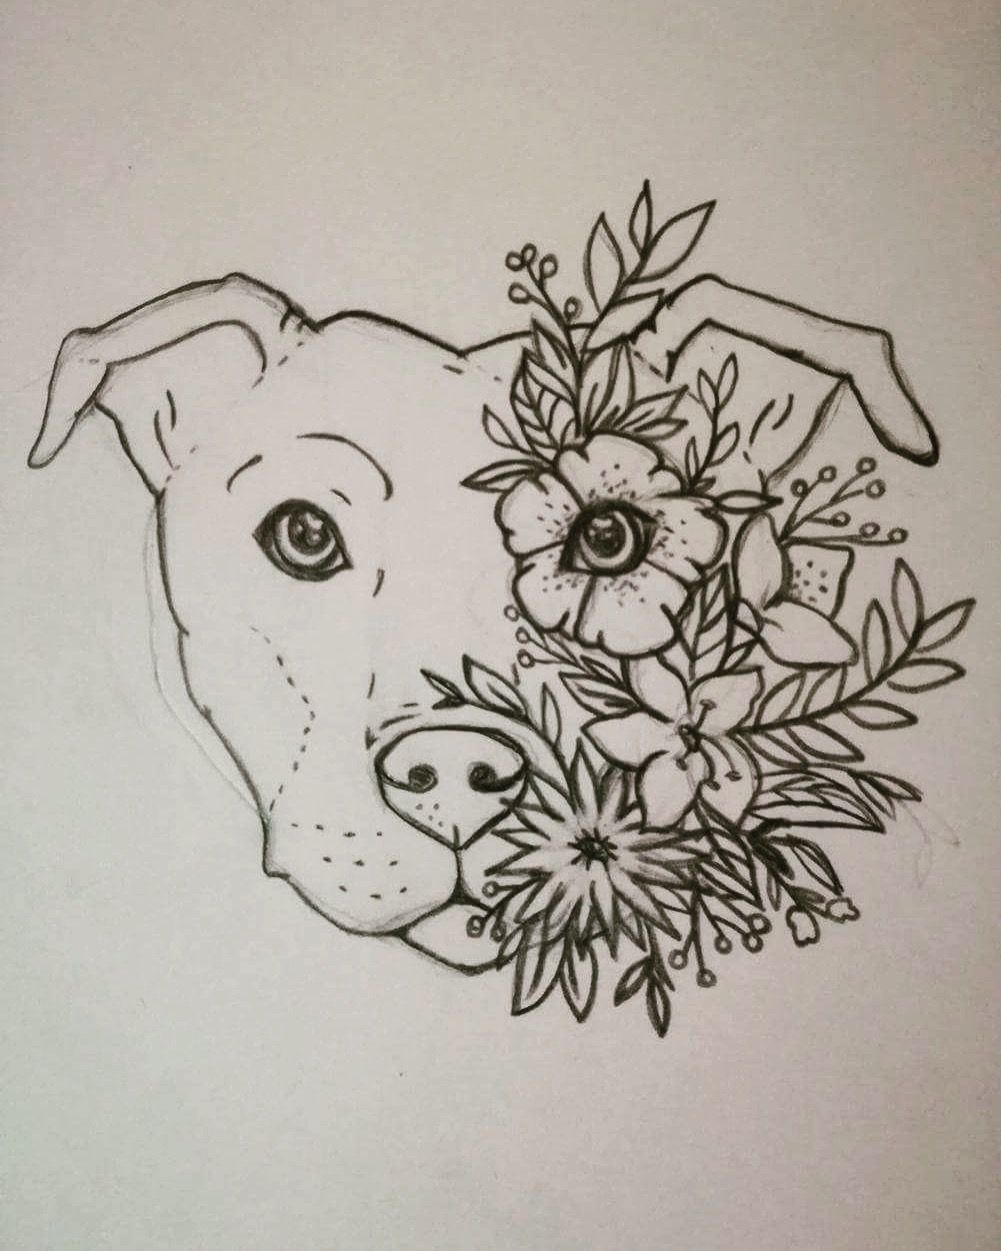 Turn this into a lotus tattoo!! Staffy tattoo Staffordshire bull terrier Floral Flower tattoo